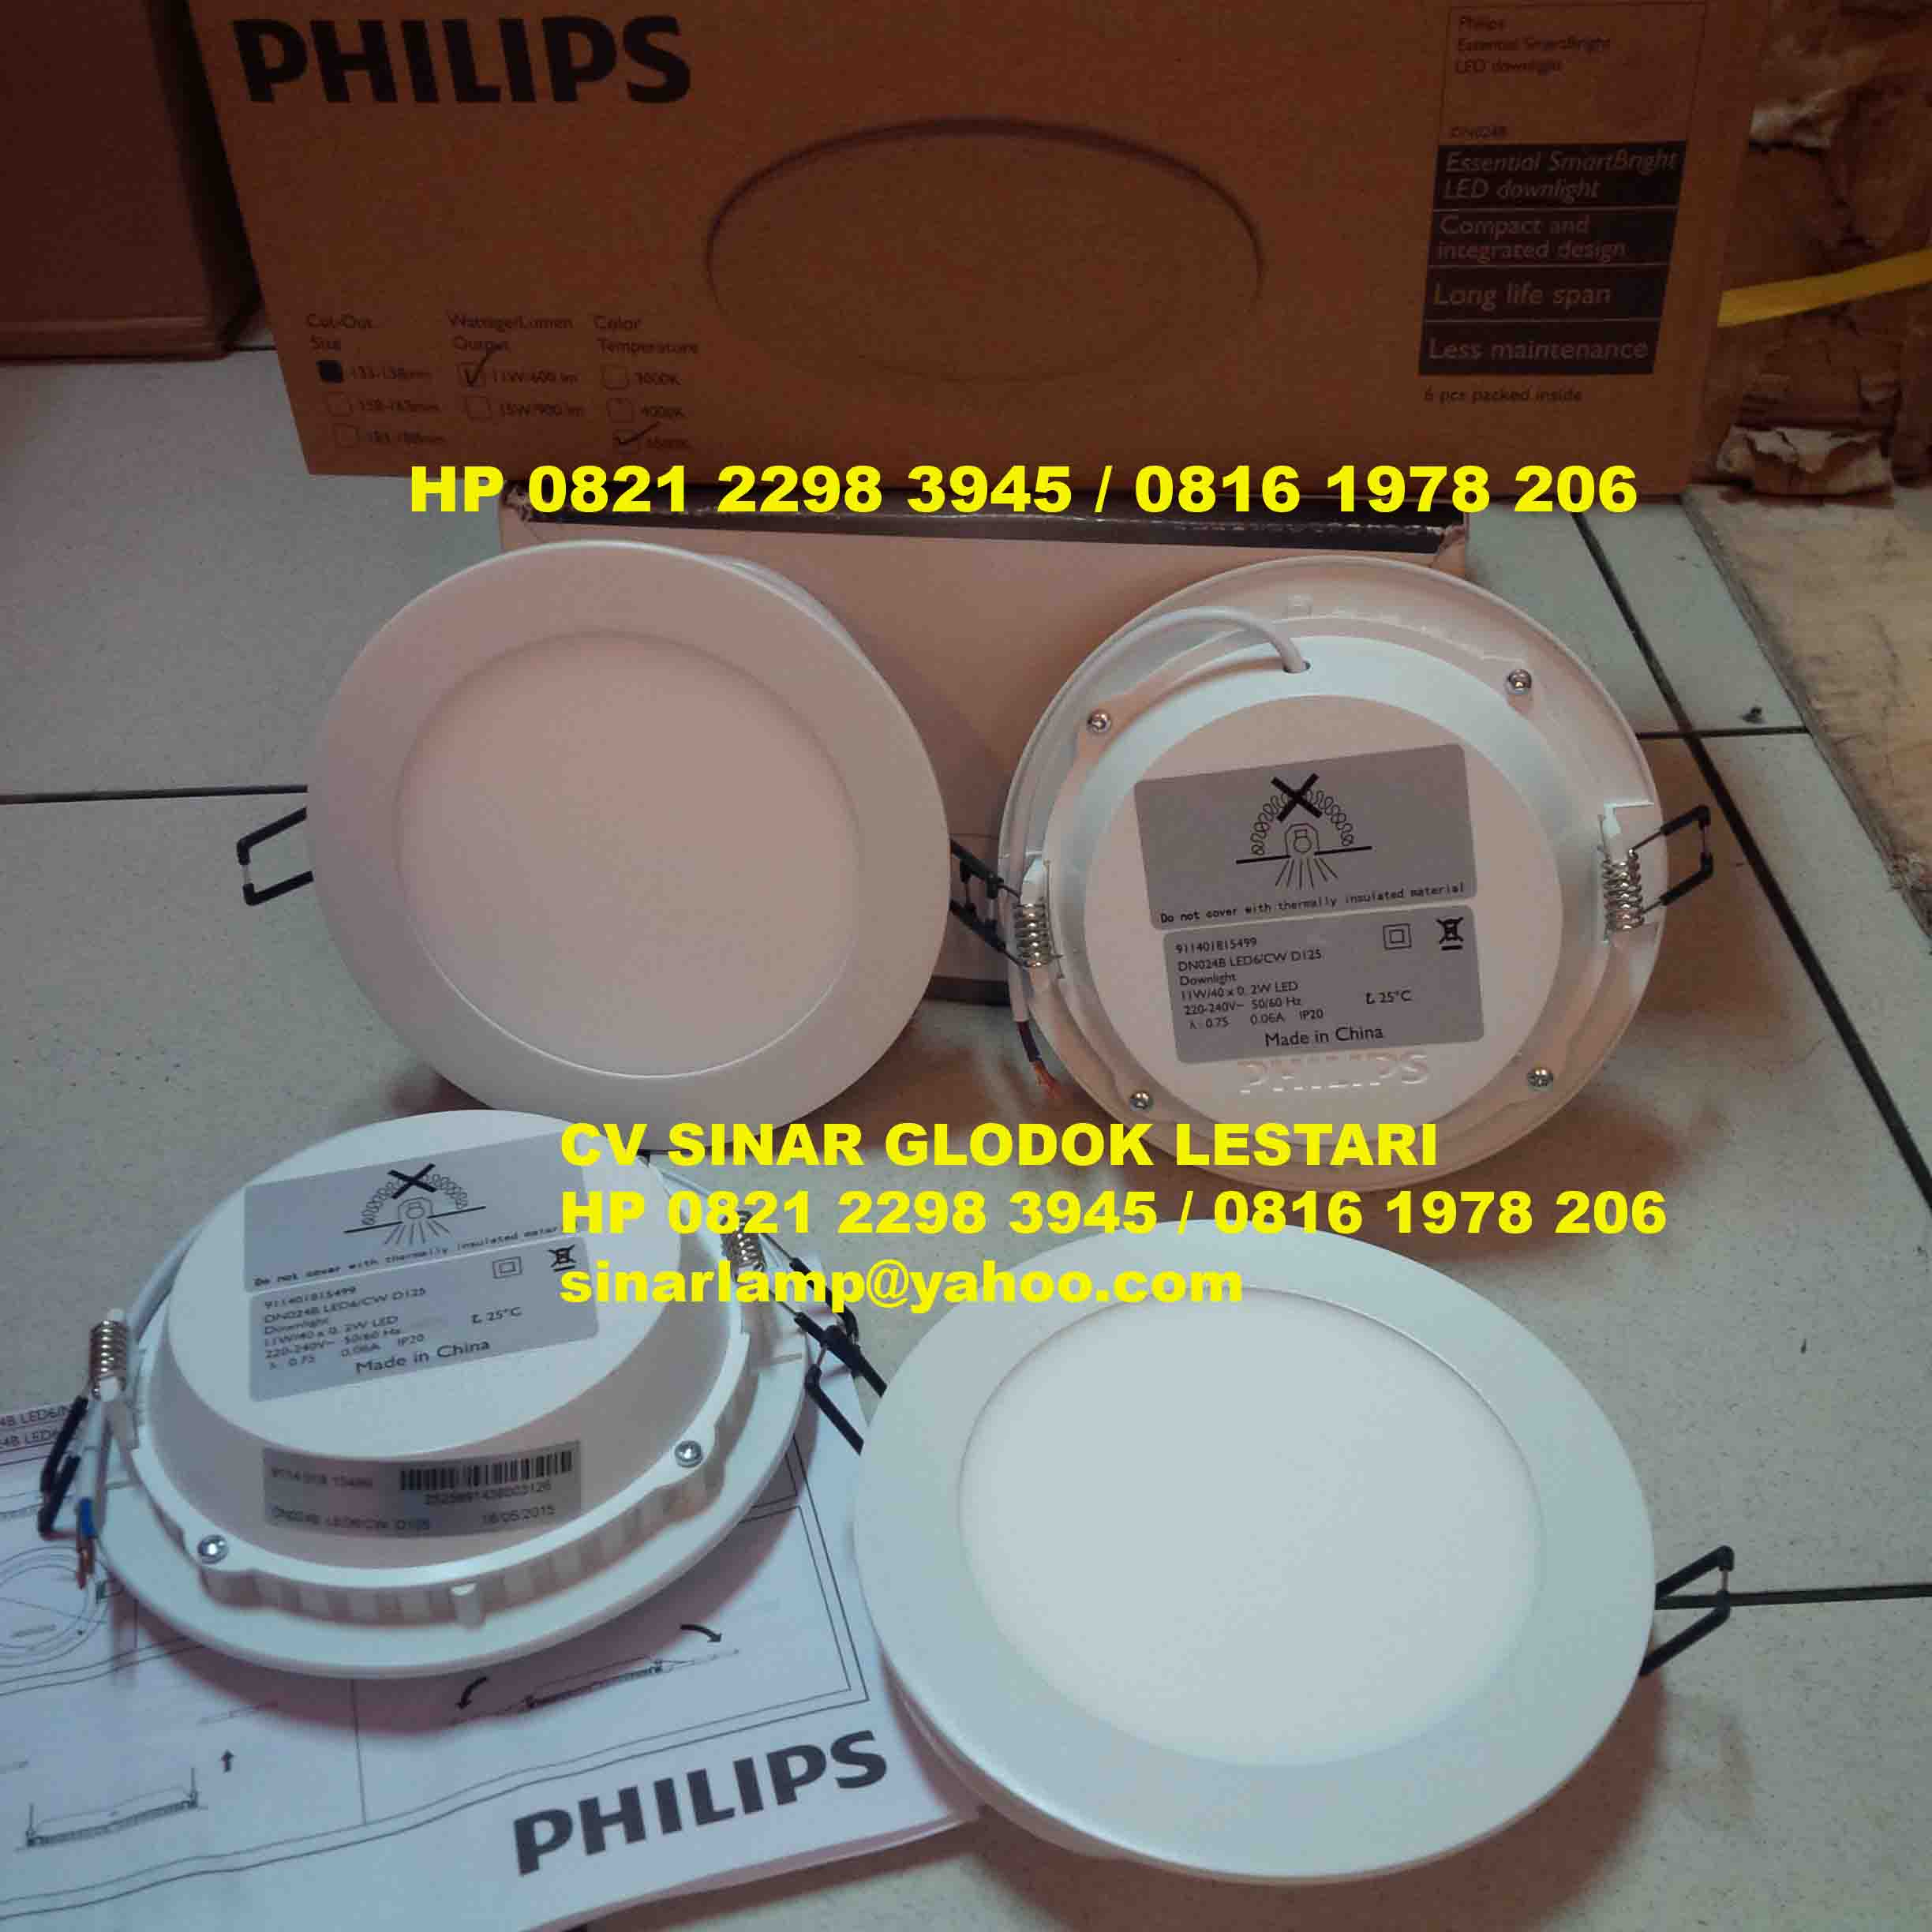 Lampu PHILIPS Essential Smartbright Downlight LED DN024B 11W